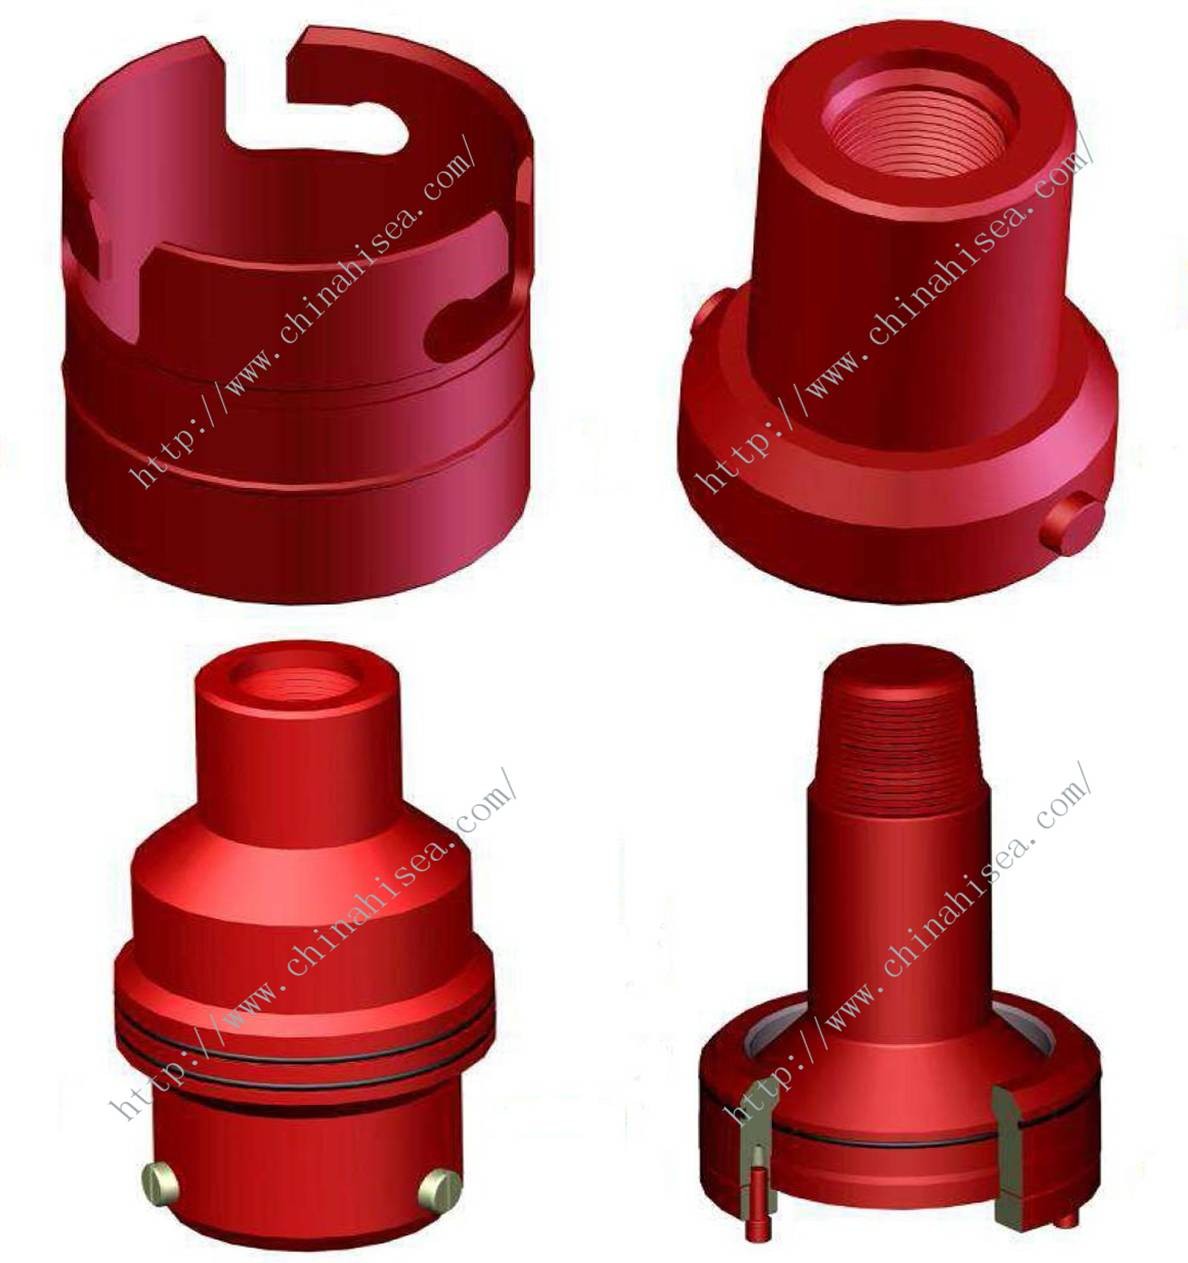 Oil/Gas Casing Head Tool